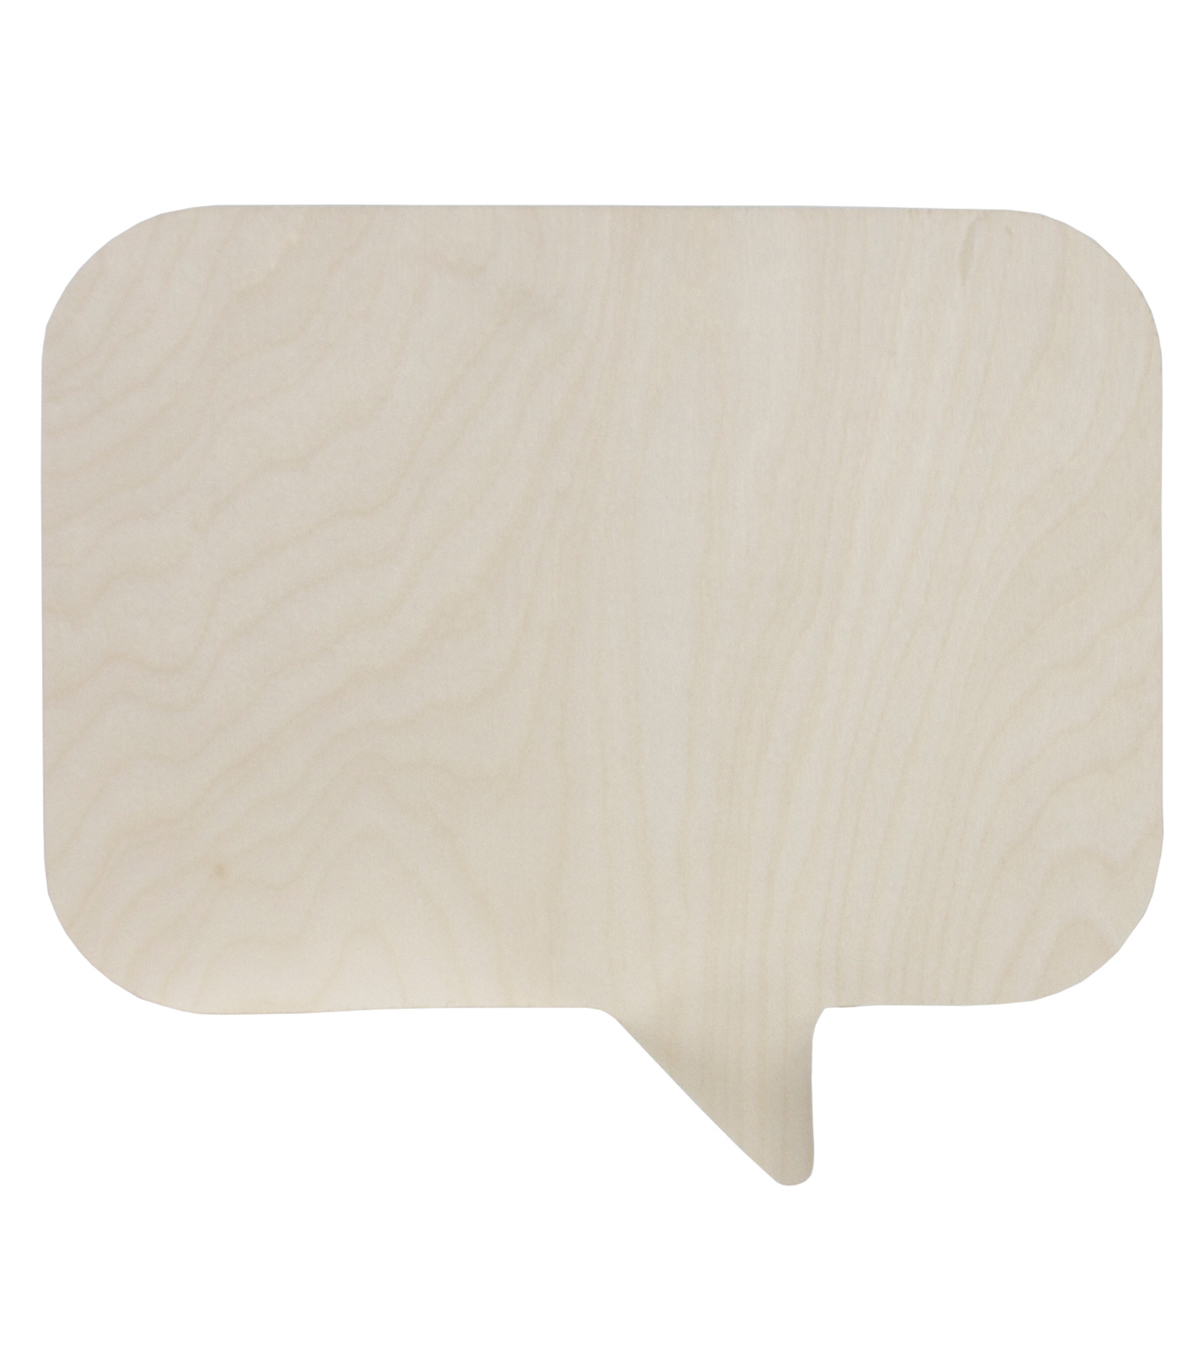 Unfinished Wood Surface Speech Bubble-Rectangle